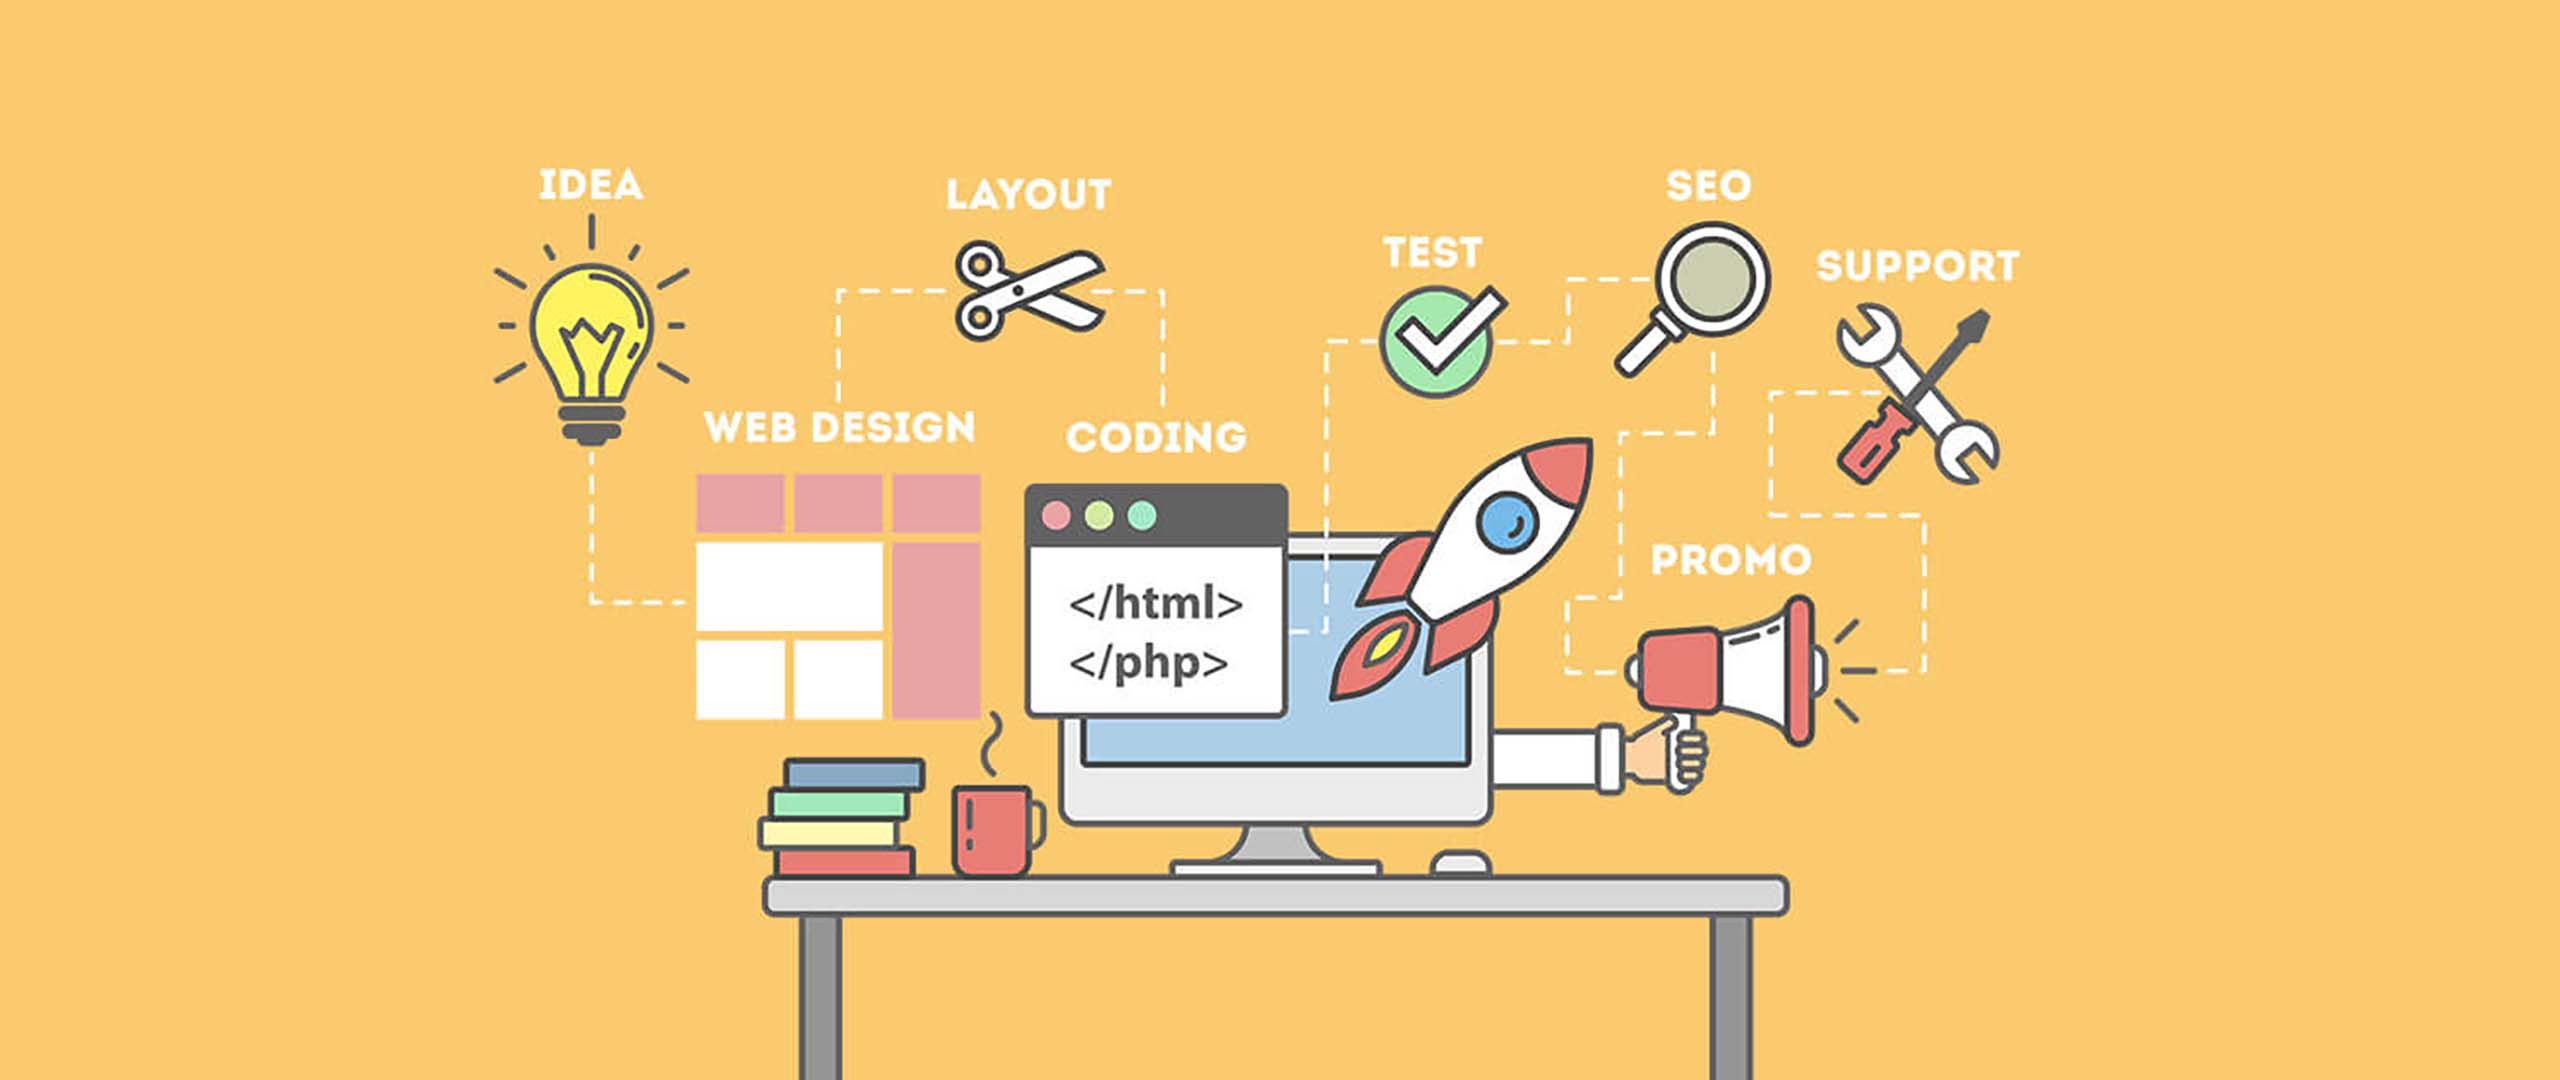 How To Select Affordable Web Design Services For Small Business